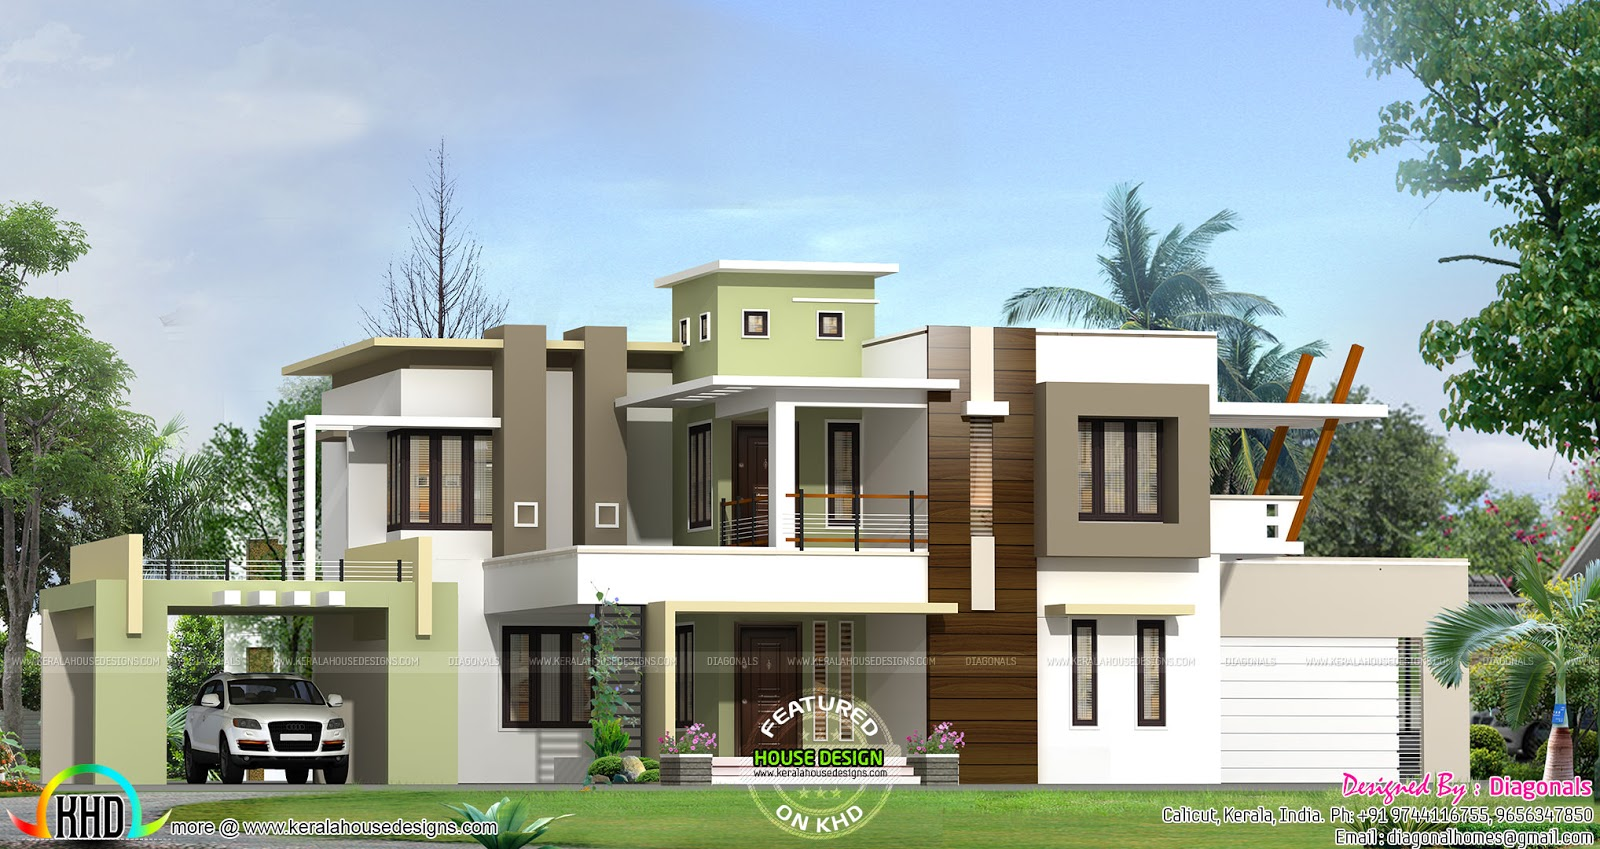 2802 sq ft box type home kerala home design and floor plans for Type of floors in houses